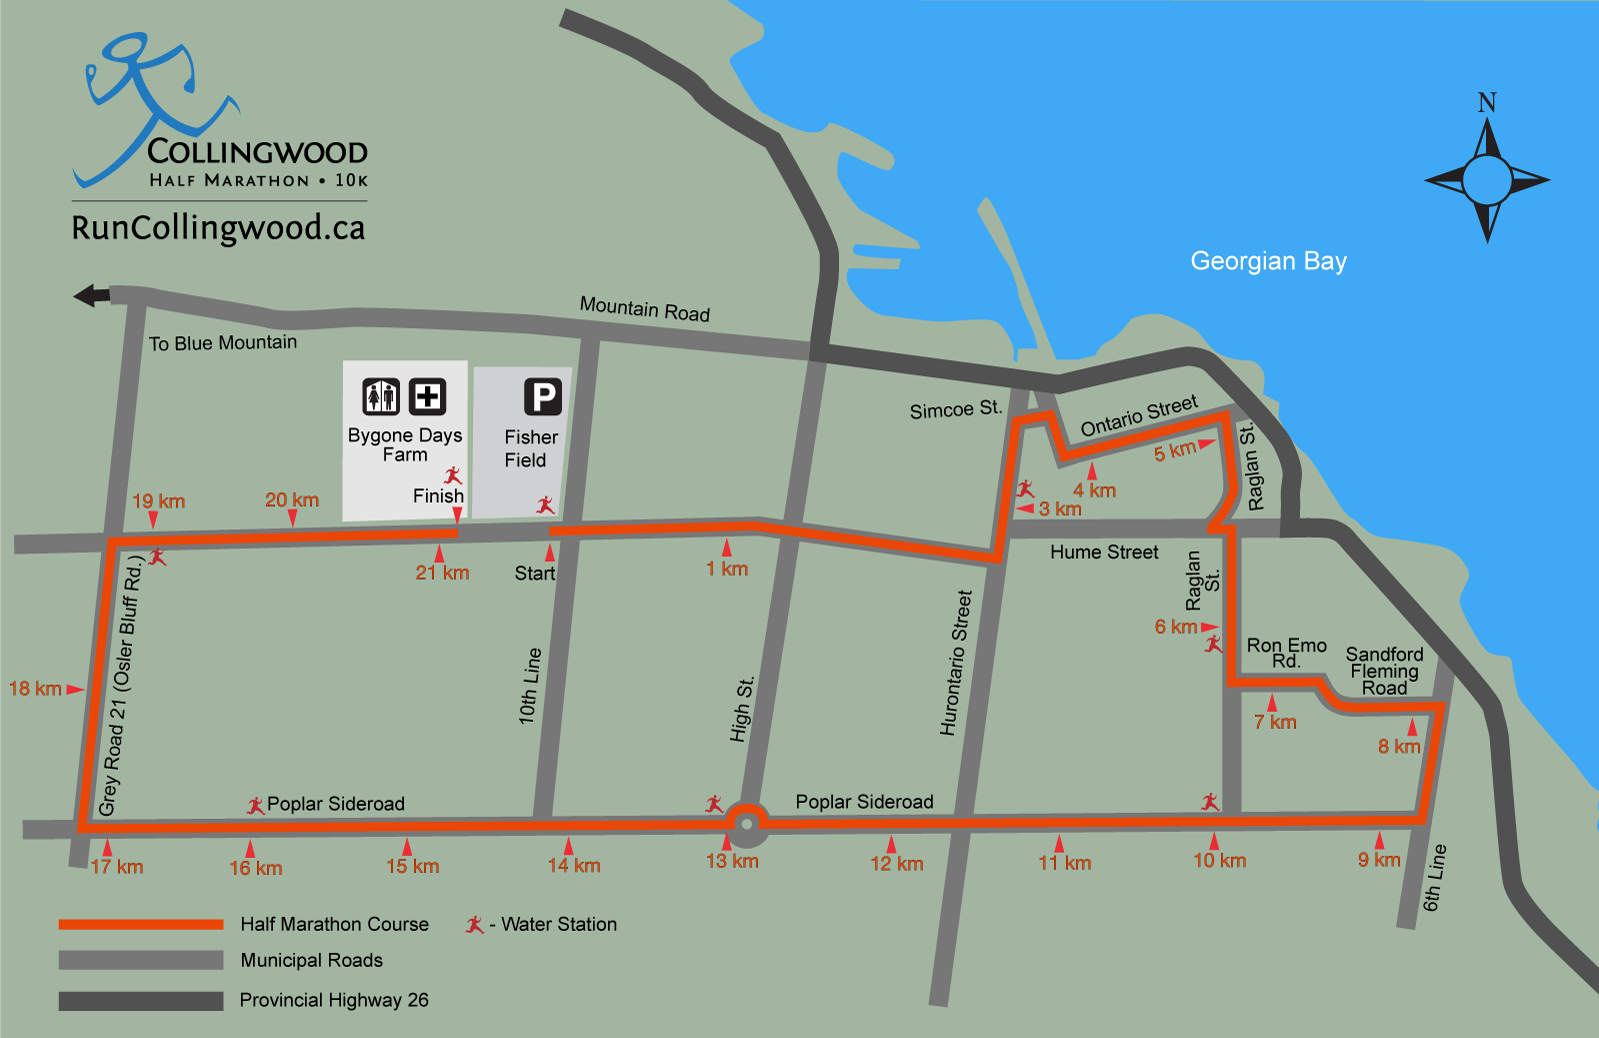 Collingwood Half Marathon Course Map